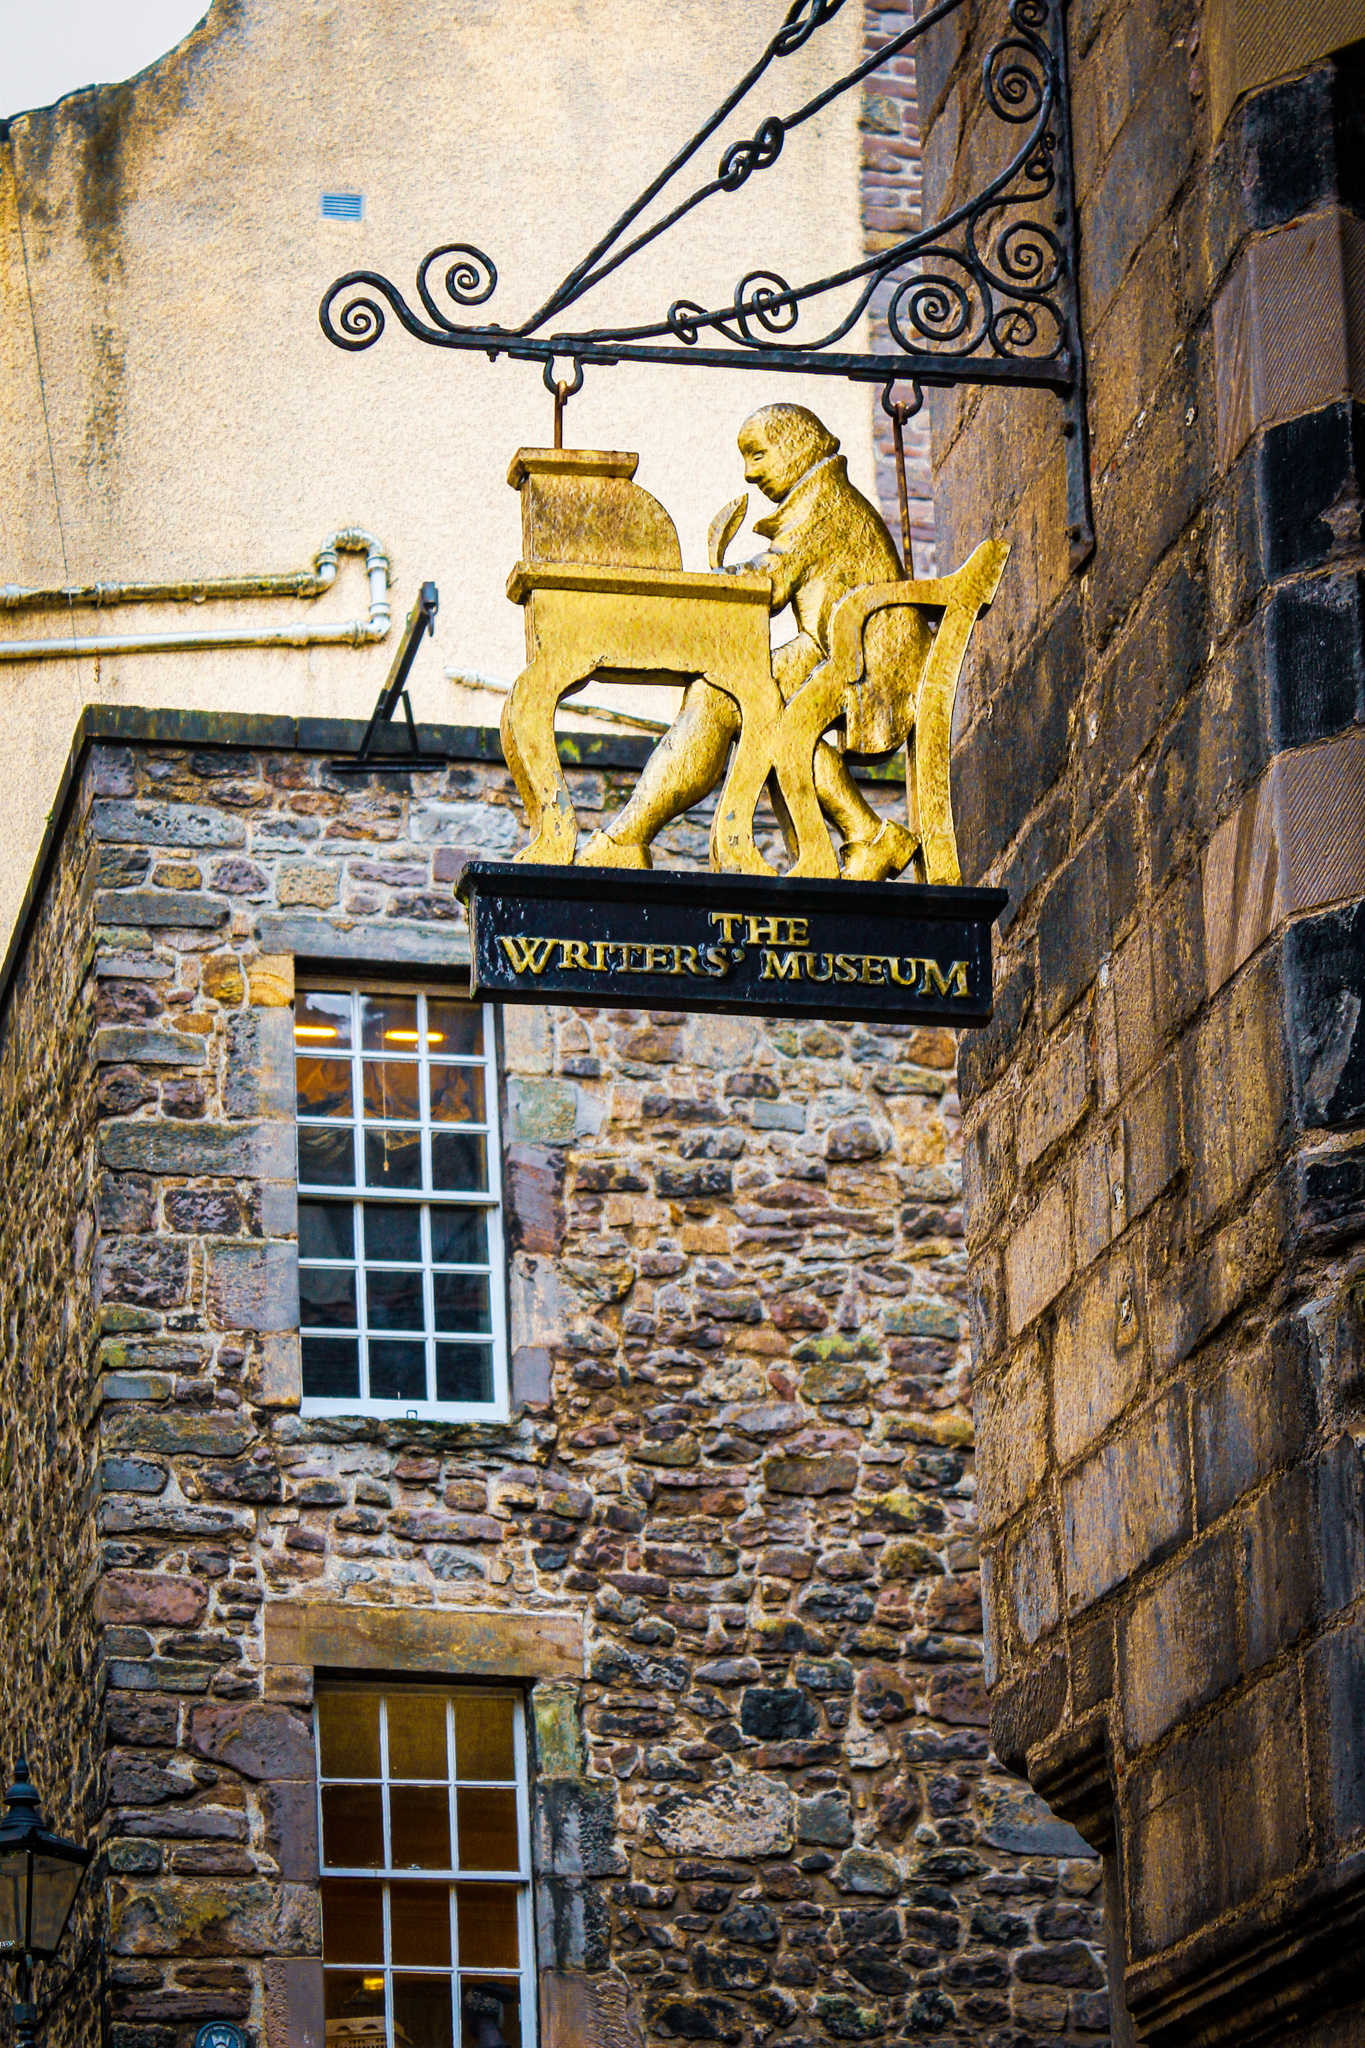 writers museum Edimbourg